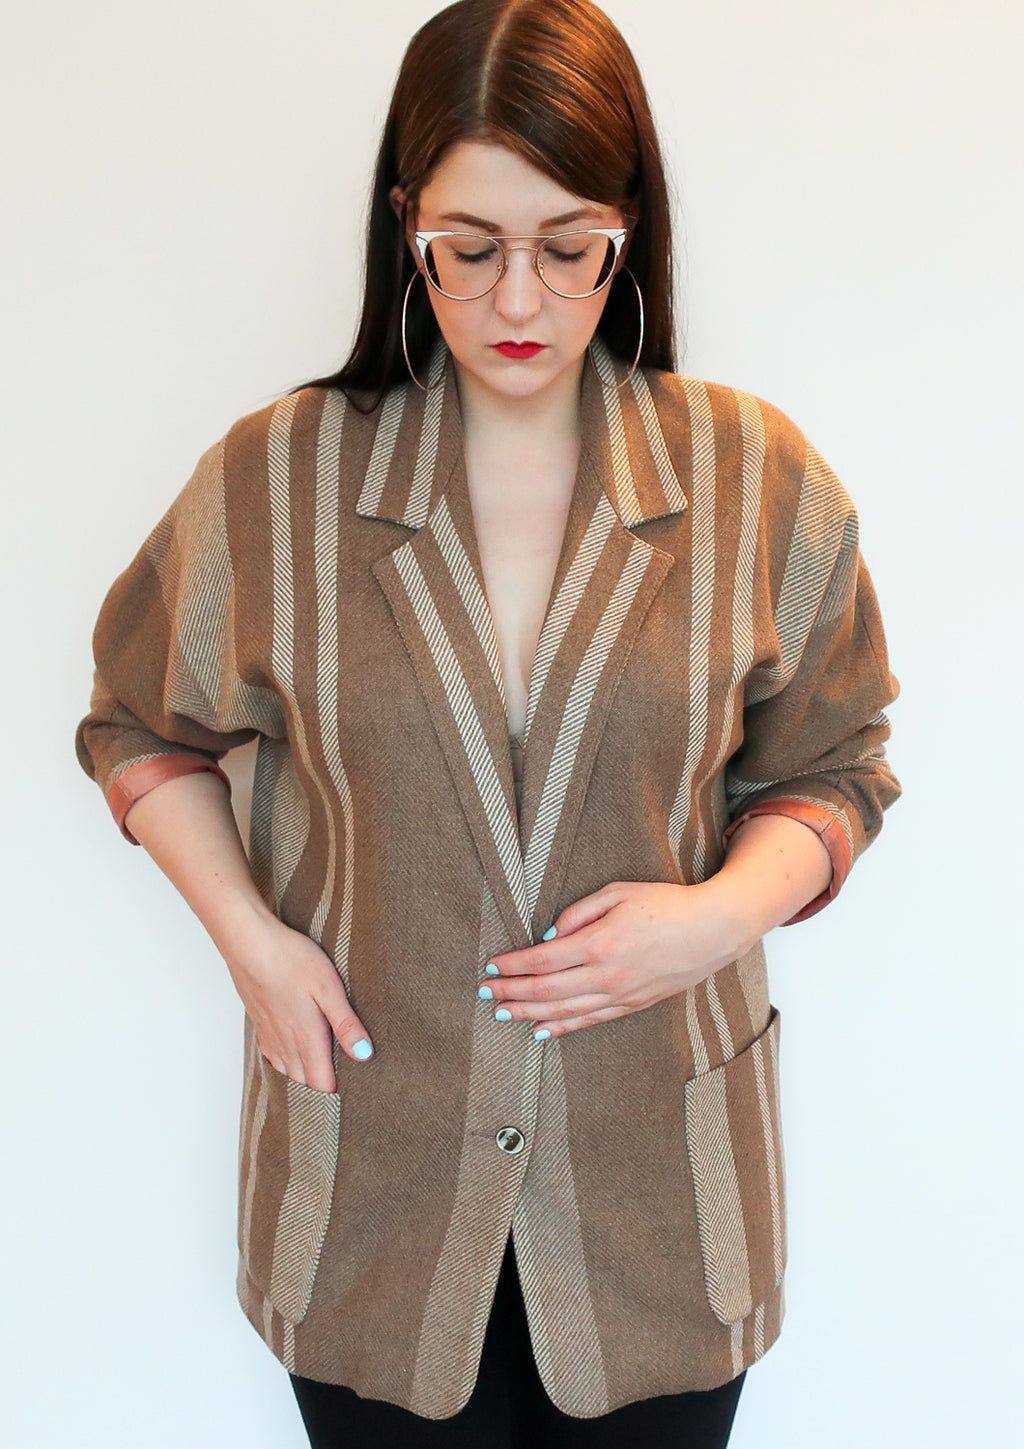 Second Room Vintage Clothing. Vintage brown and beige wool blend, herringbone striped blazer, with dolman sleeves, two front pockets, and one button closure. Blazer is fully lined and has a great oversize fit. Free North American shipping on all orders.